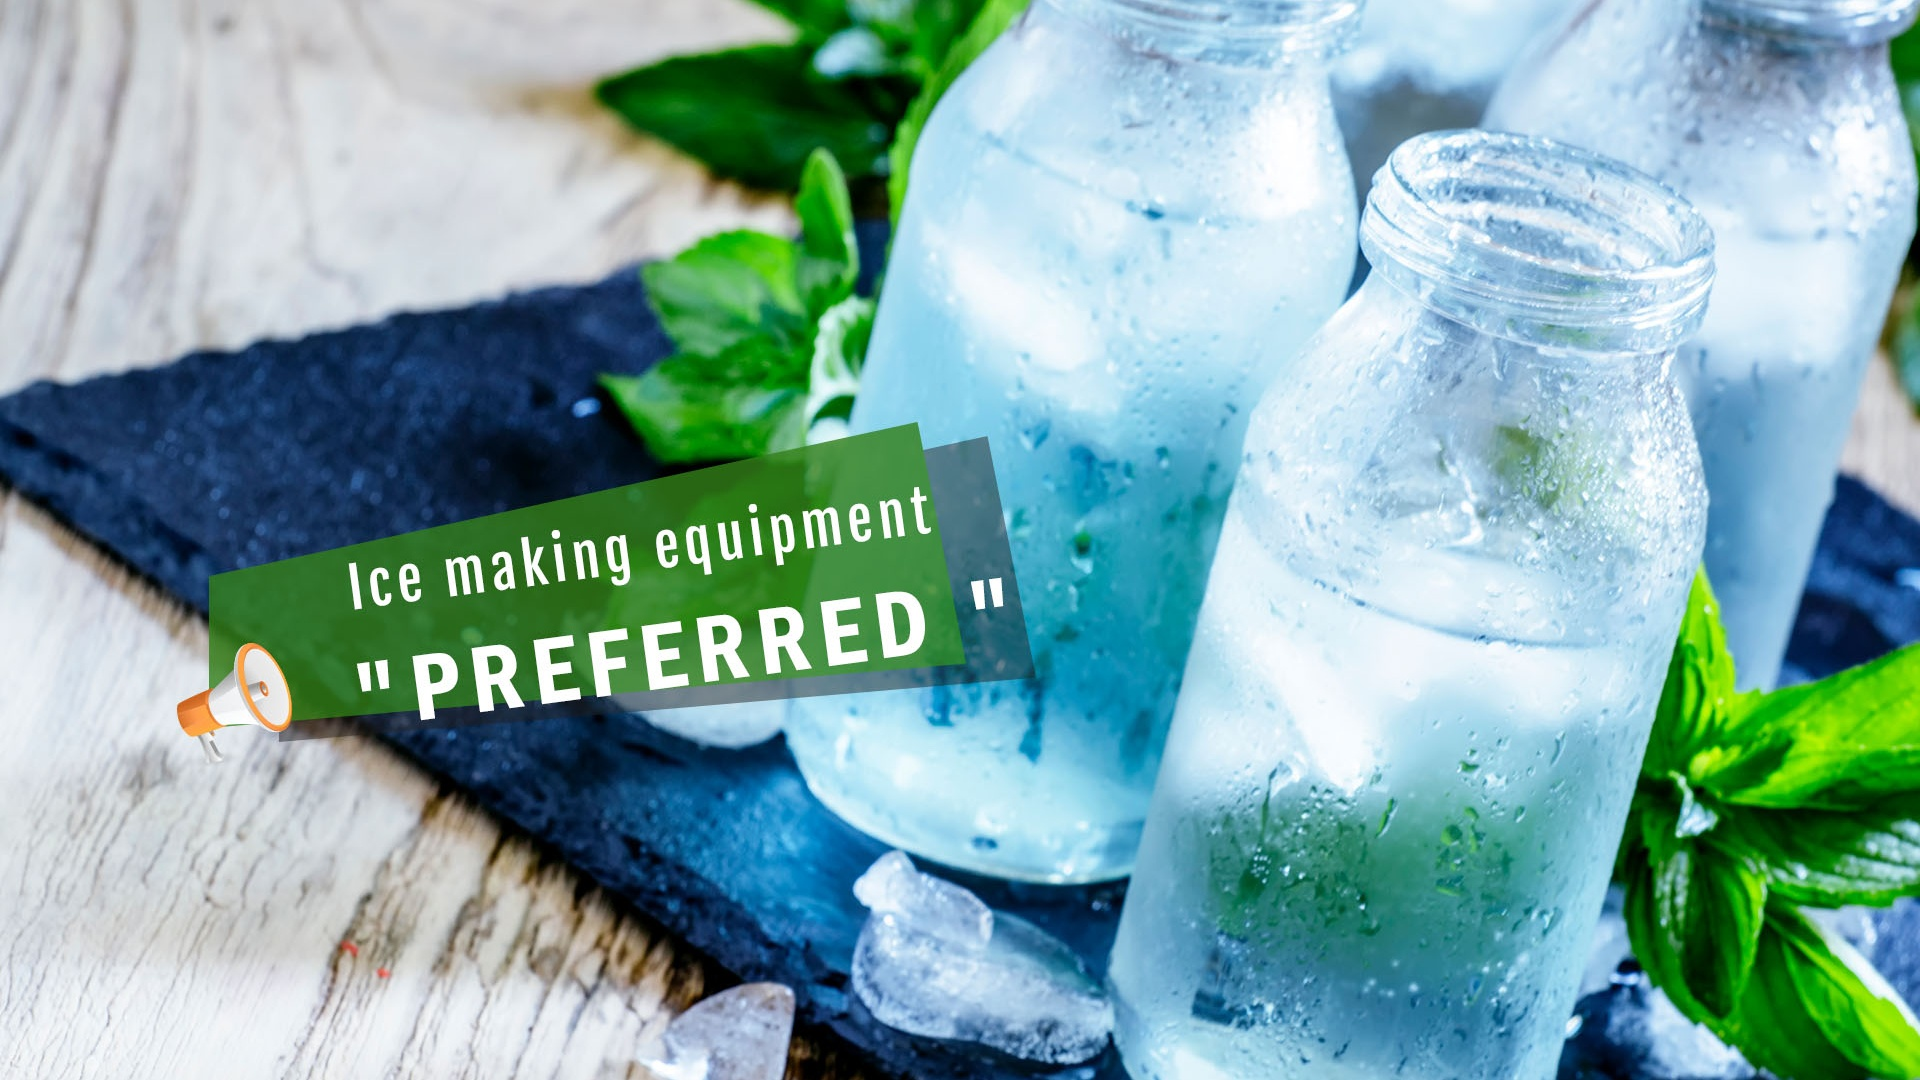 Ice freezing equipment preferred